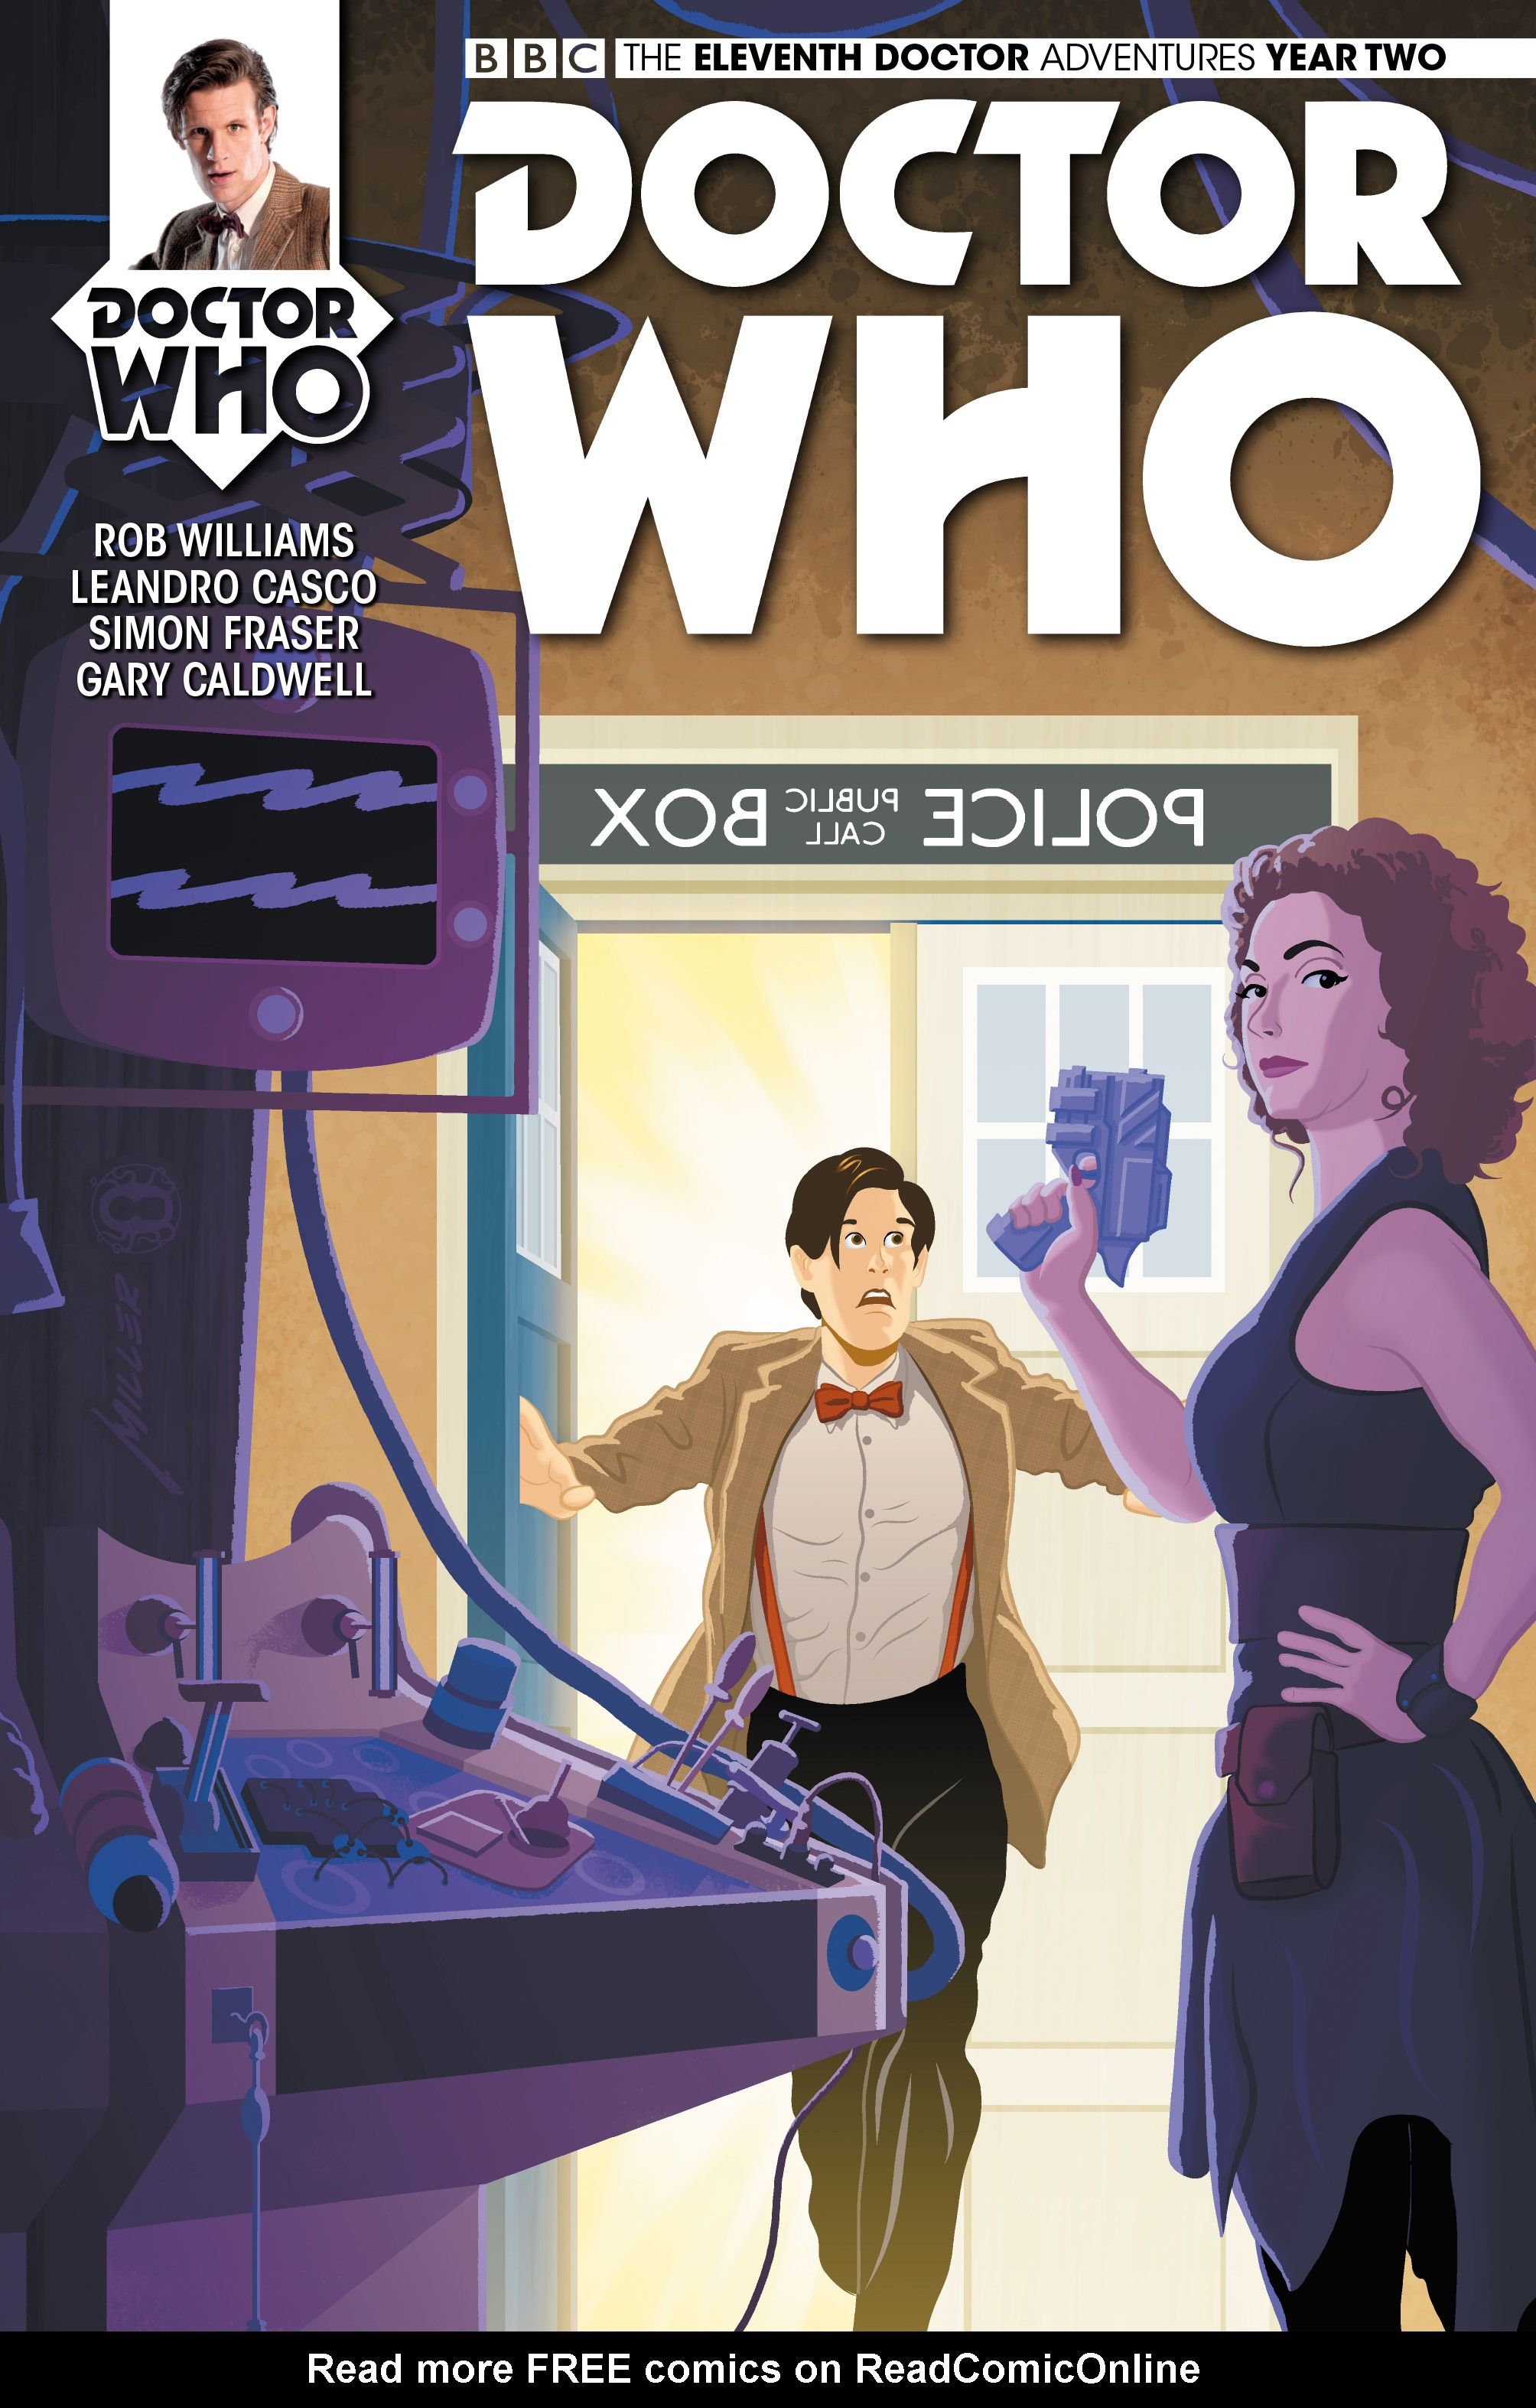 Doctor Who: The Eleventh Doctor Year Two 7 Page 1